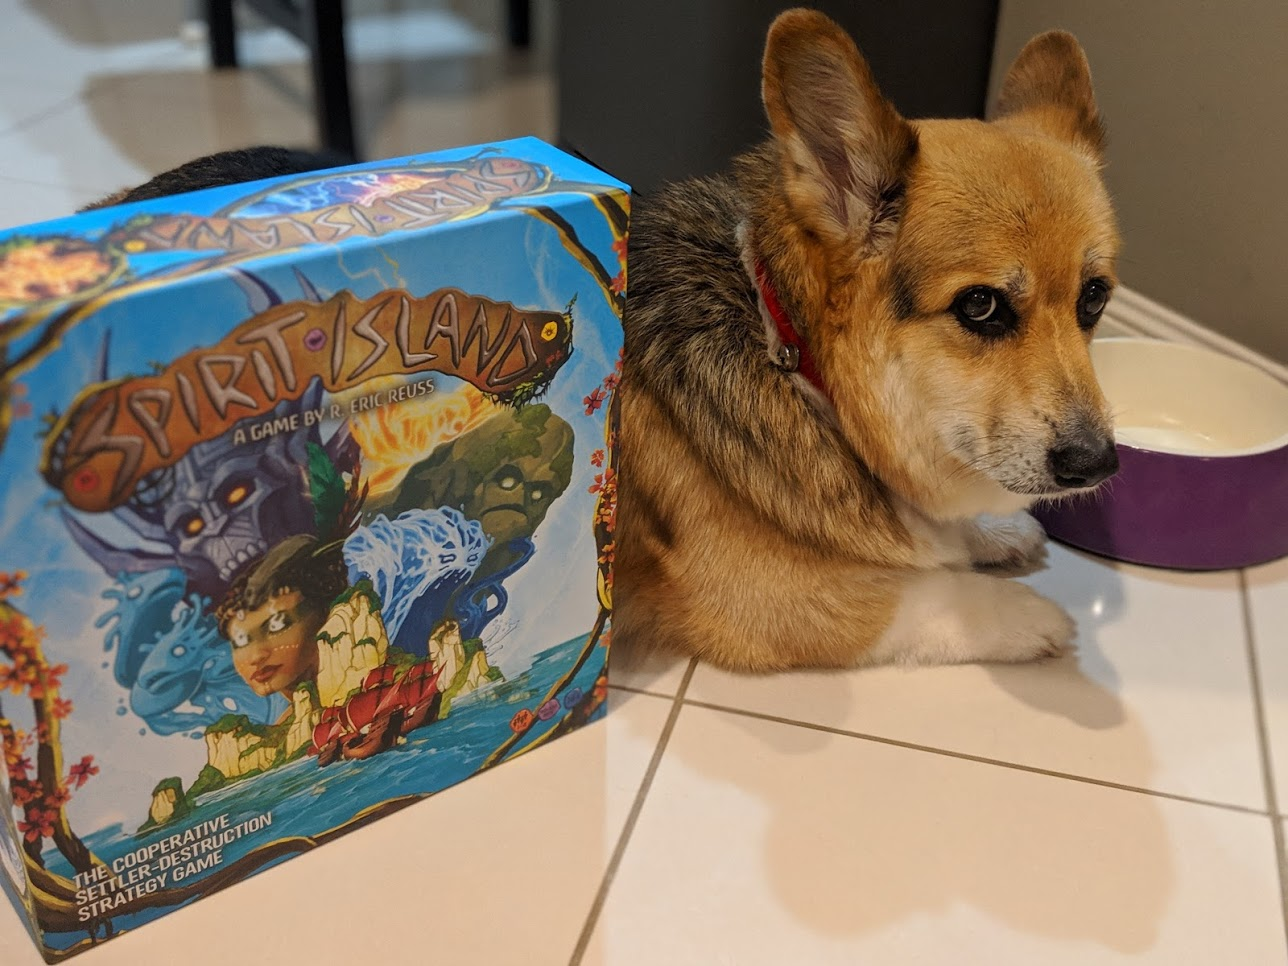 Corgi looking unimpressed by the cover of Spirit Island.